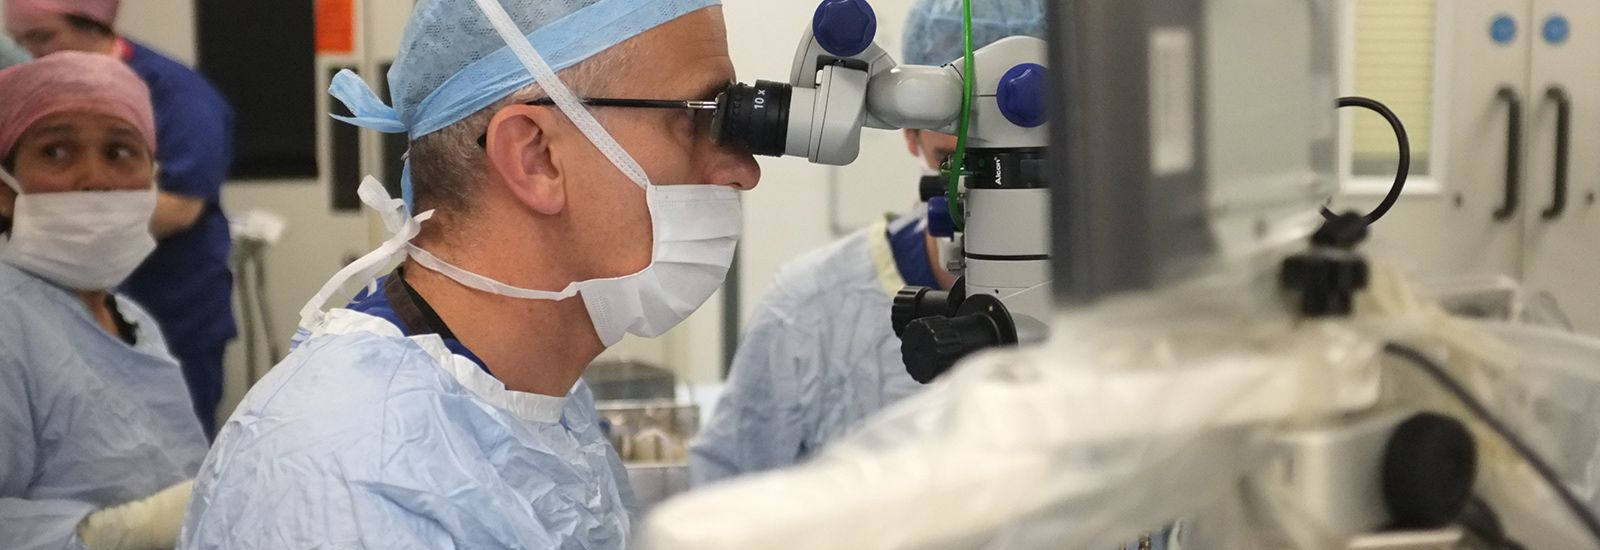 Robot-assisted eye surgery